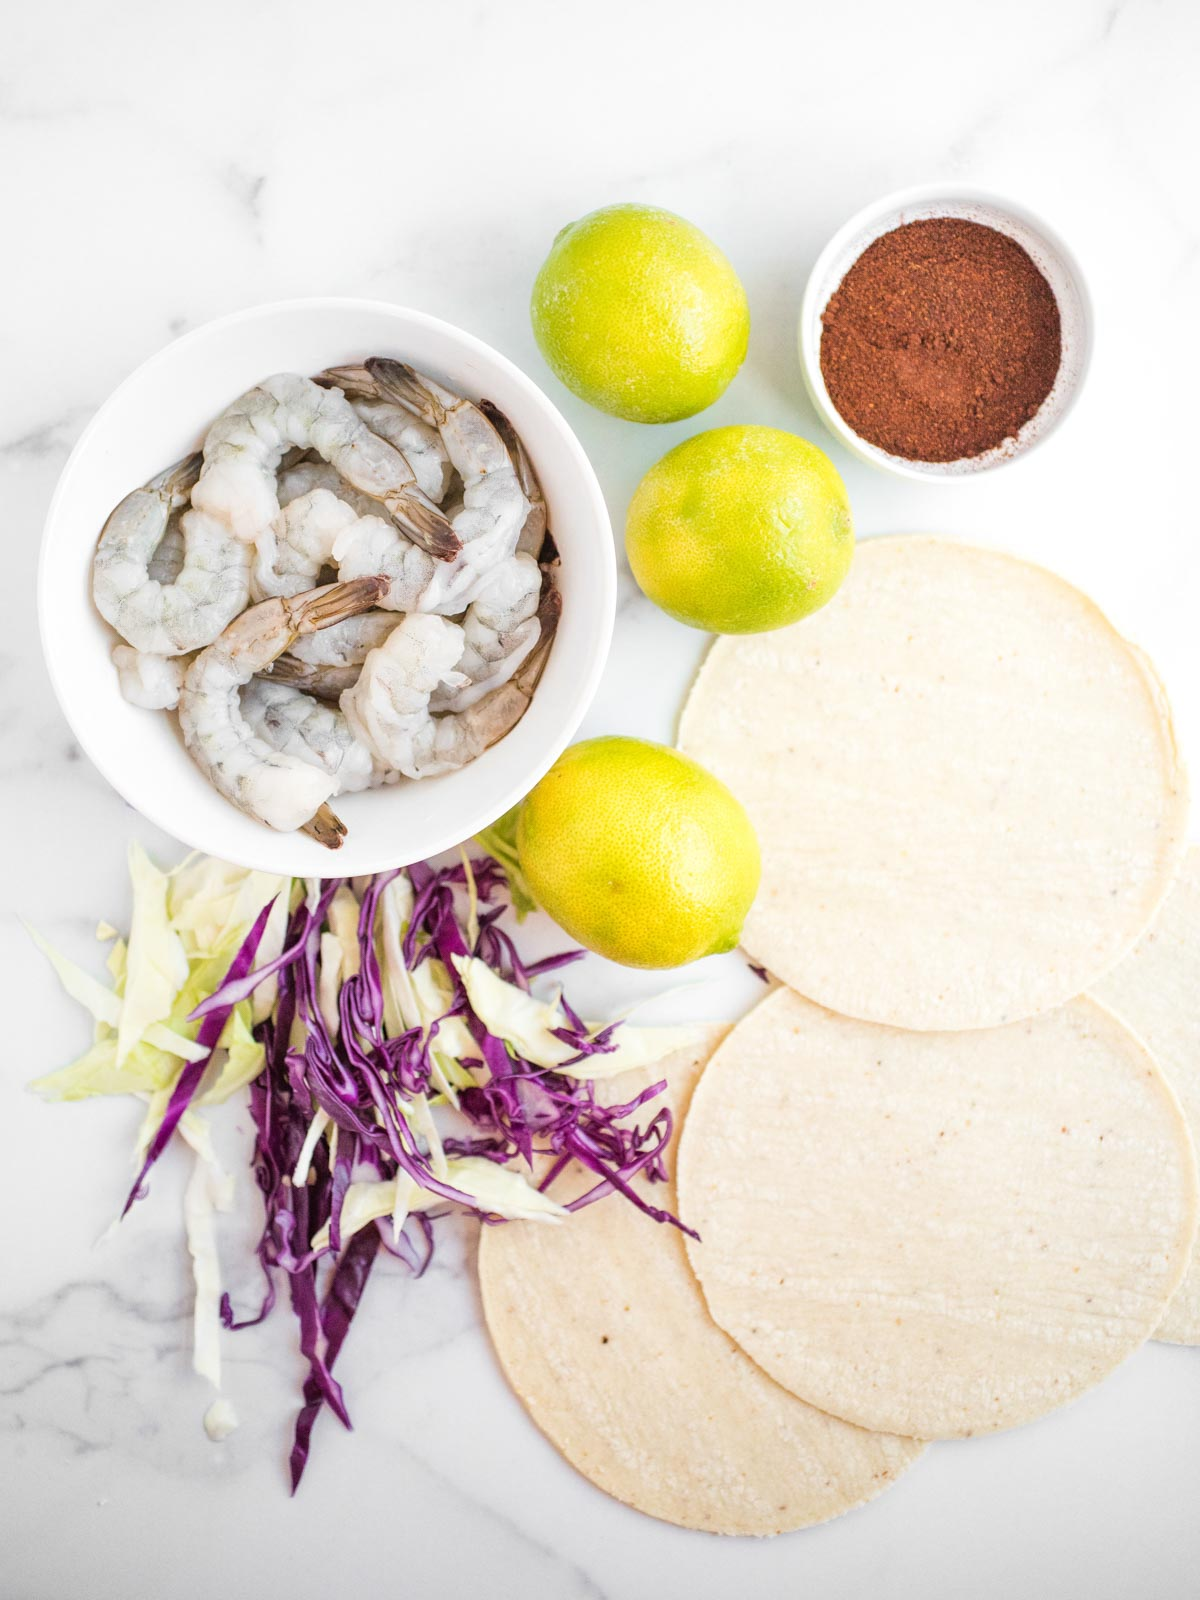 ingredients for chili lime shrimp tacos